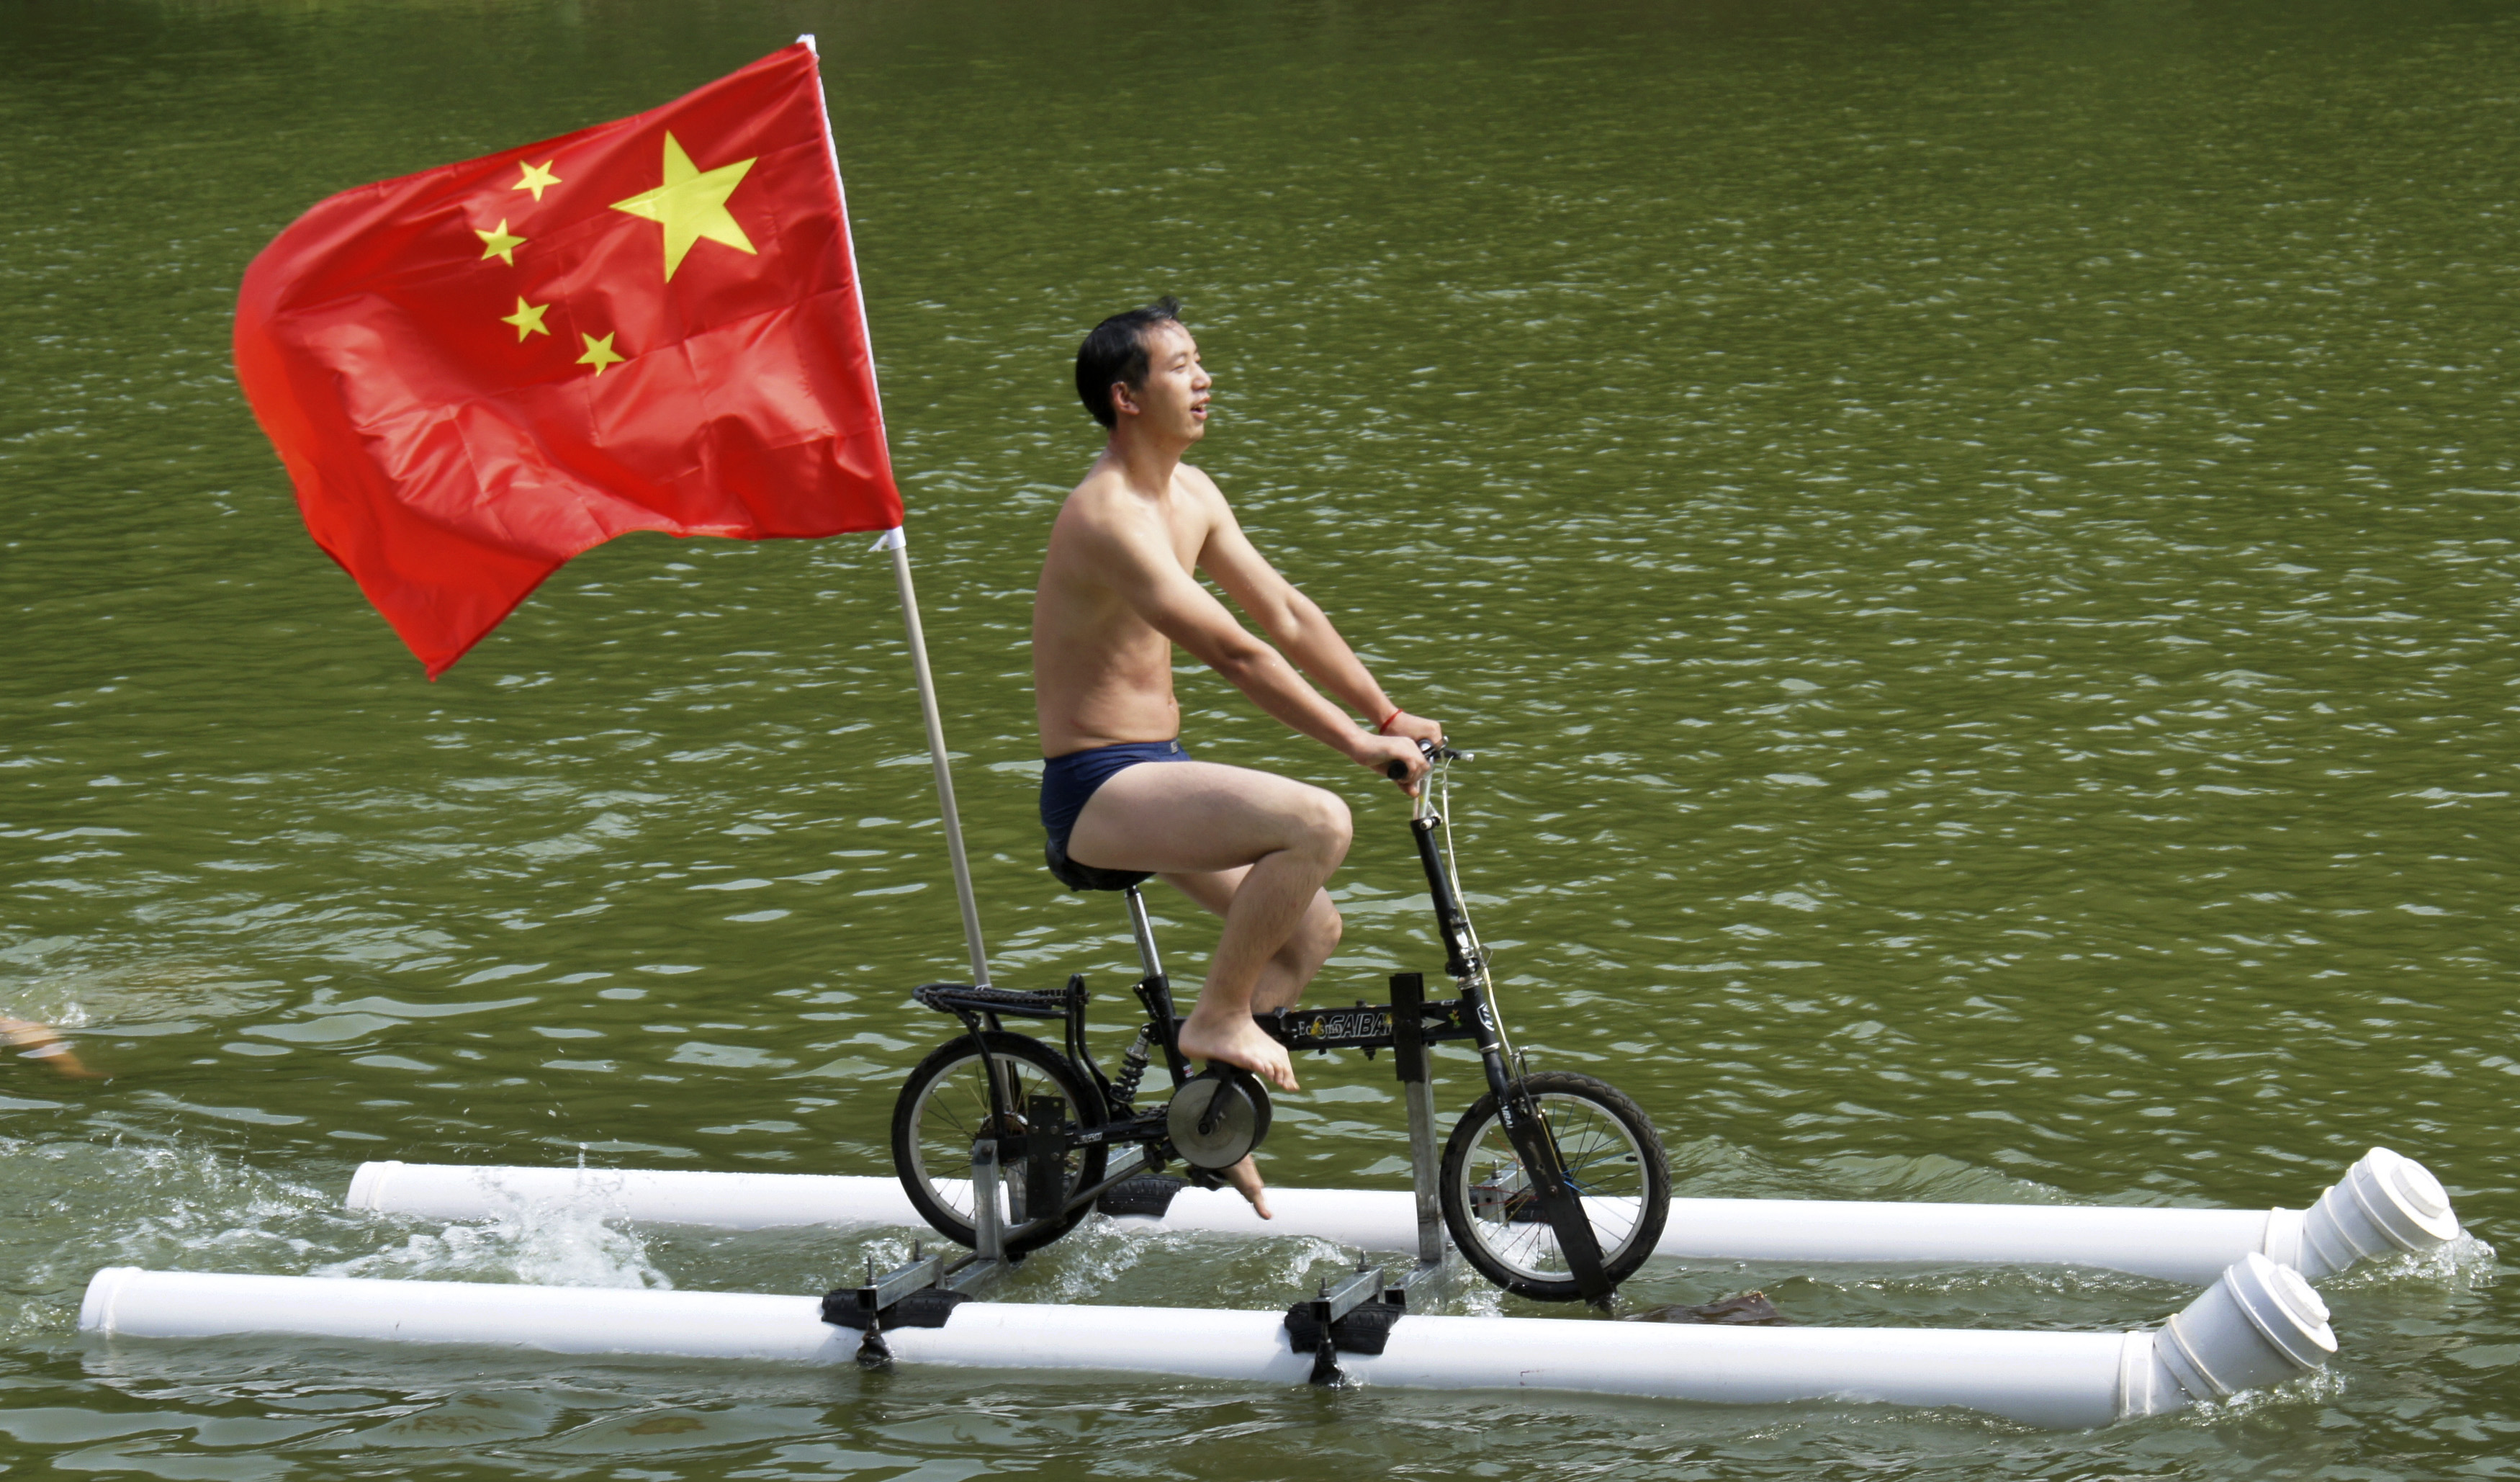 A Chinese flag is seen as Liu Wanyong performs on his invention, an improvised bicycle which is held afloat by plastic tubes, in Zhenning